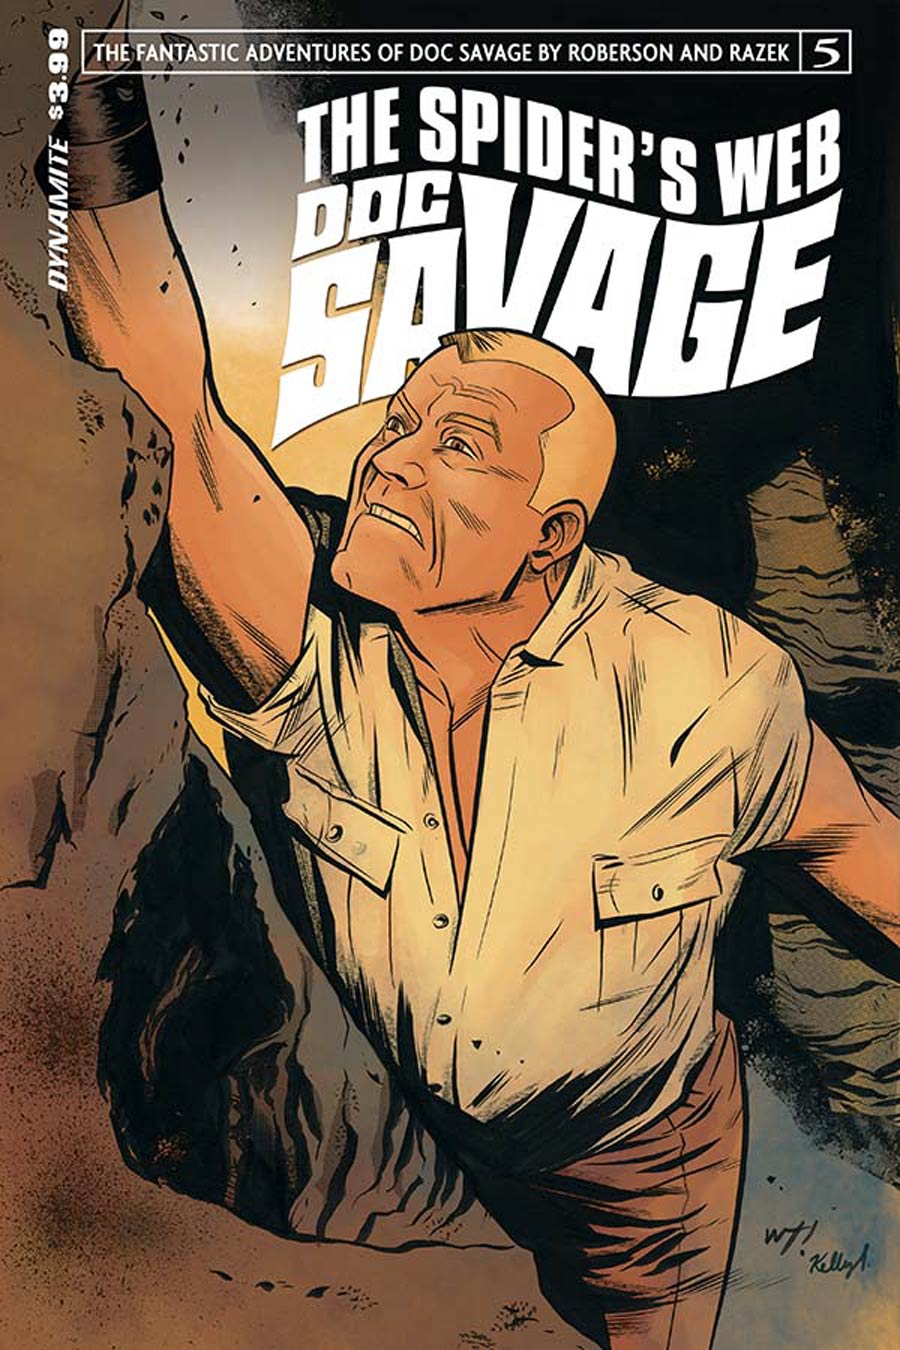 Doc Savage Spiders Web #5 Cover A Regular Wilfredo Torres Cover